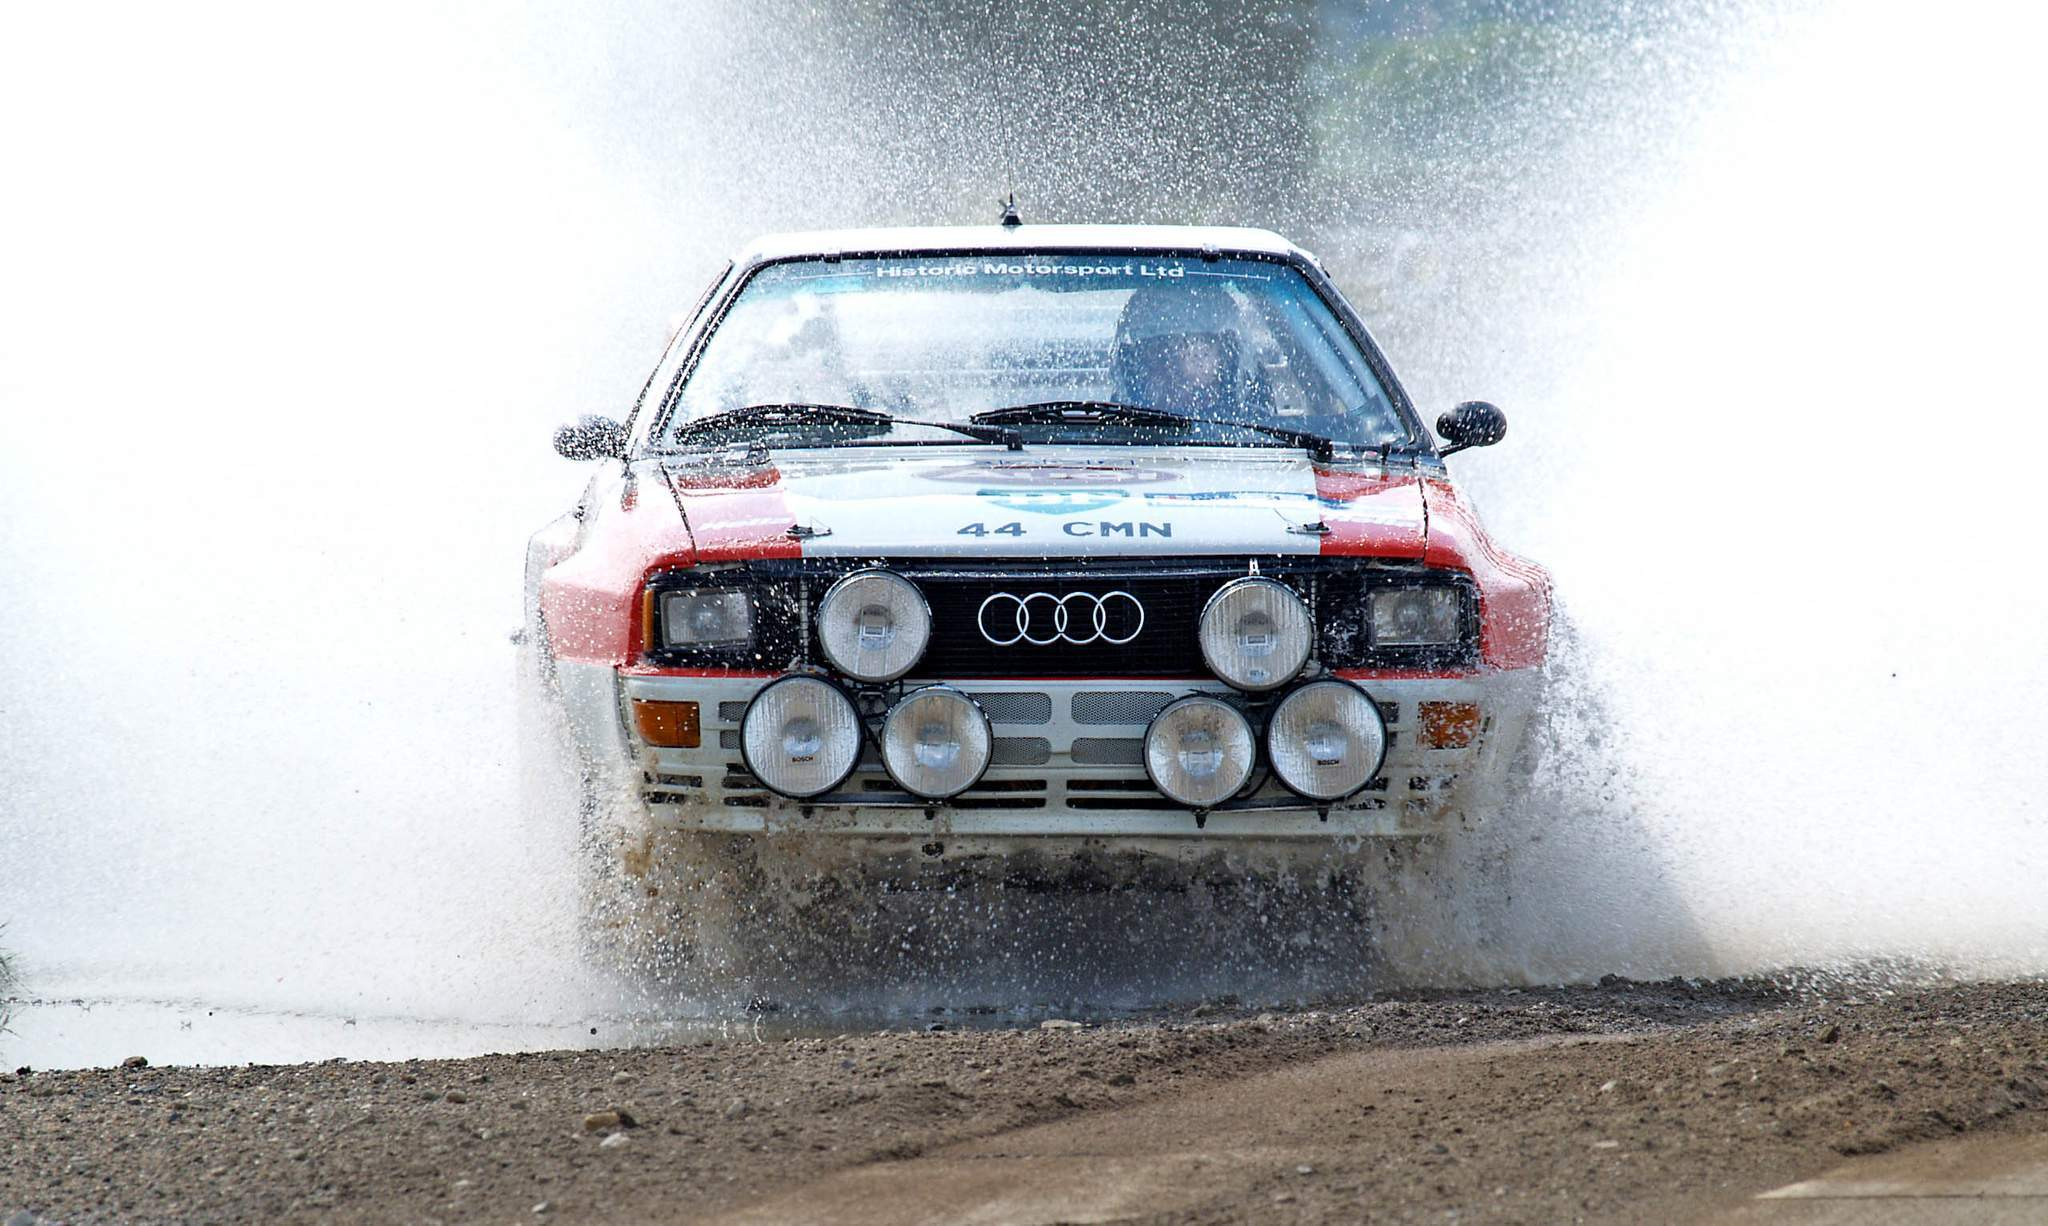 2048x1226 - Rallying Wallpapers 33